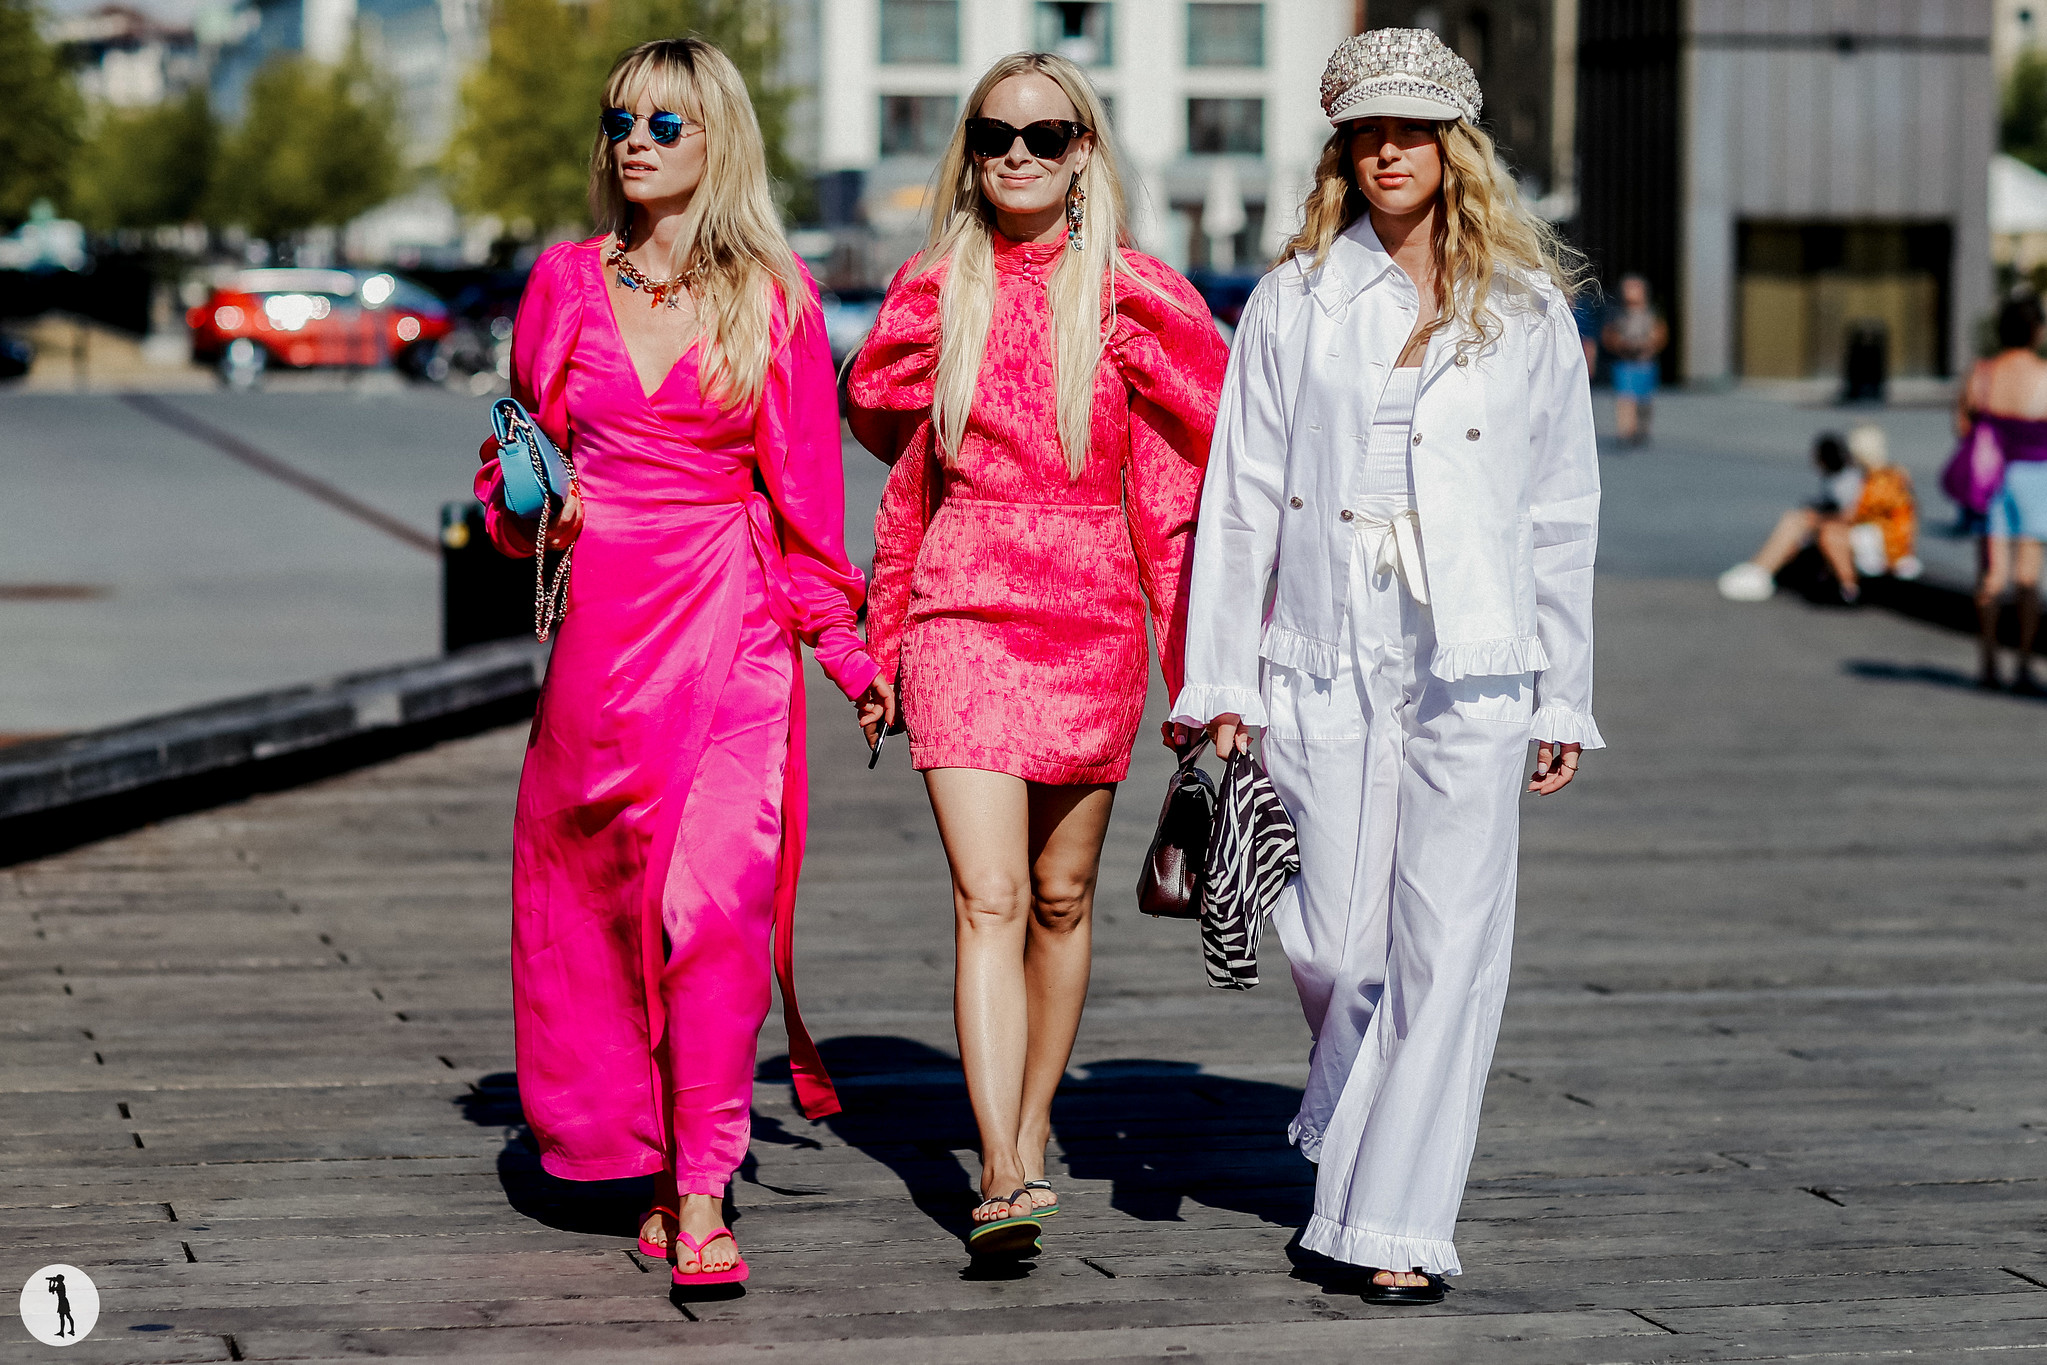 Jeanette Friis Madsen, Thora Valdimars and Emili Sindlev - Copenhagen Fashion Week SS19 (3)